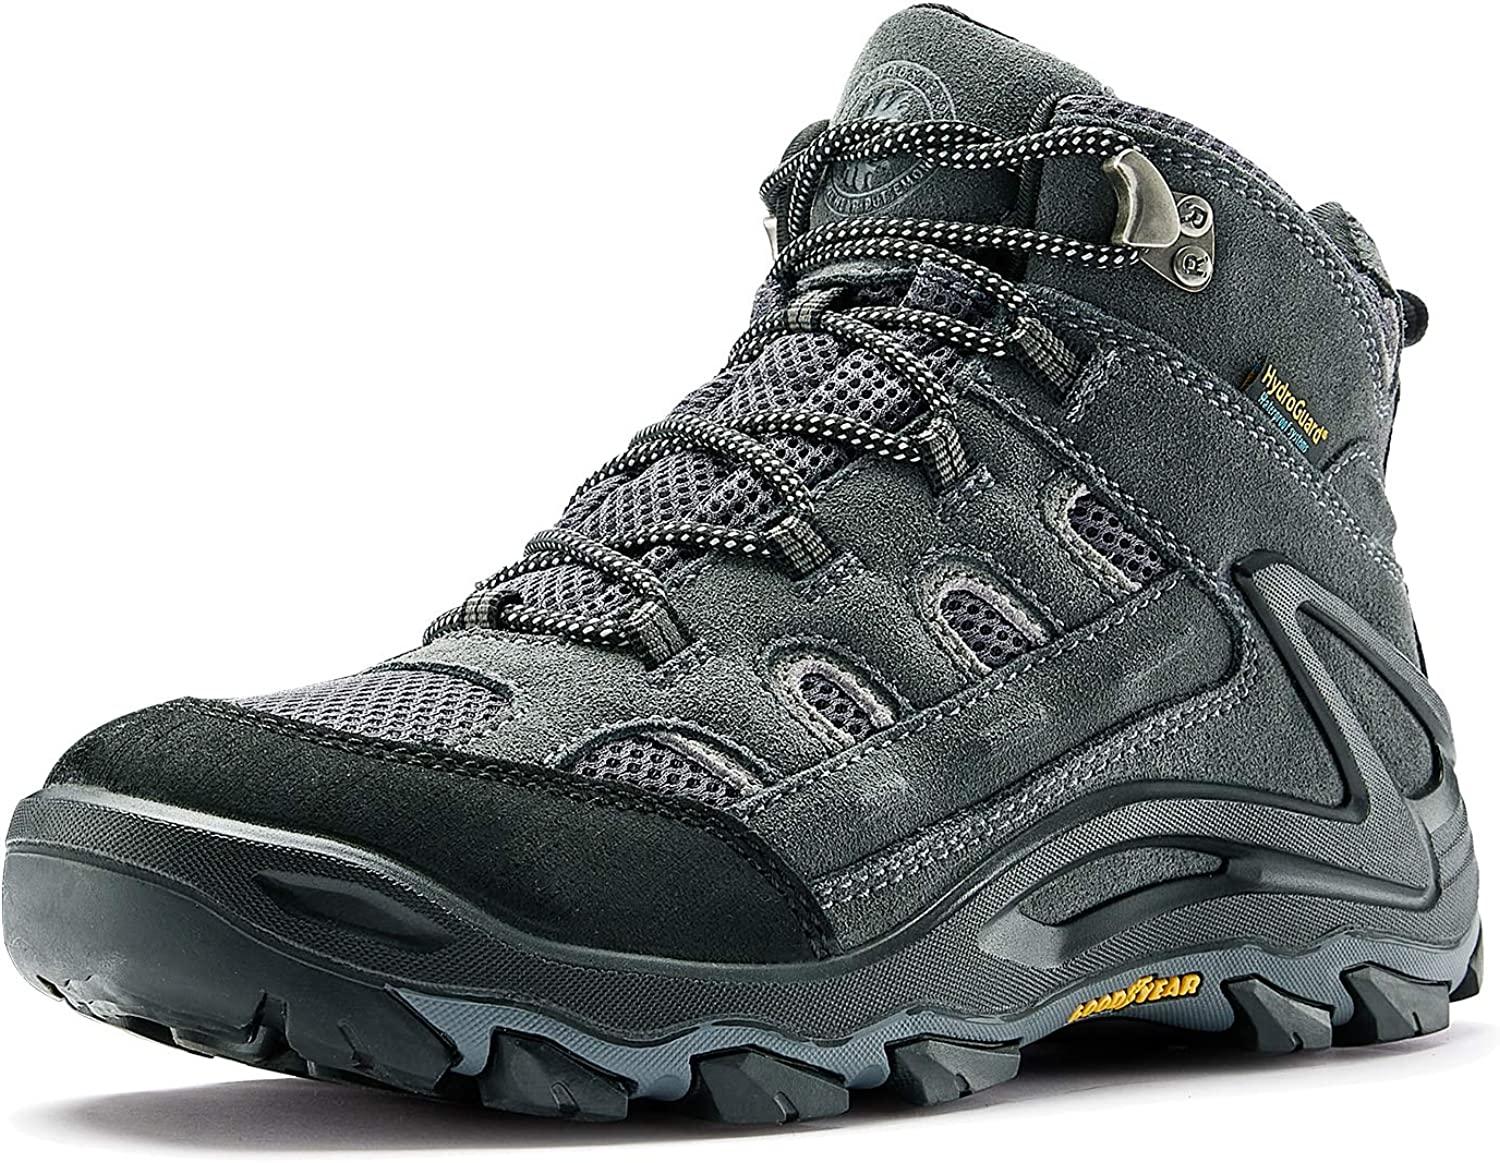 New sales ROCKROOSTER Newland Hiking Boot for Men Absor Shock Comfortable Limited time sale